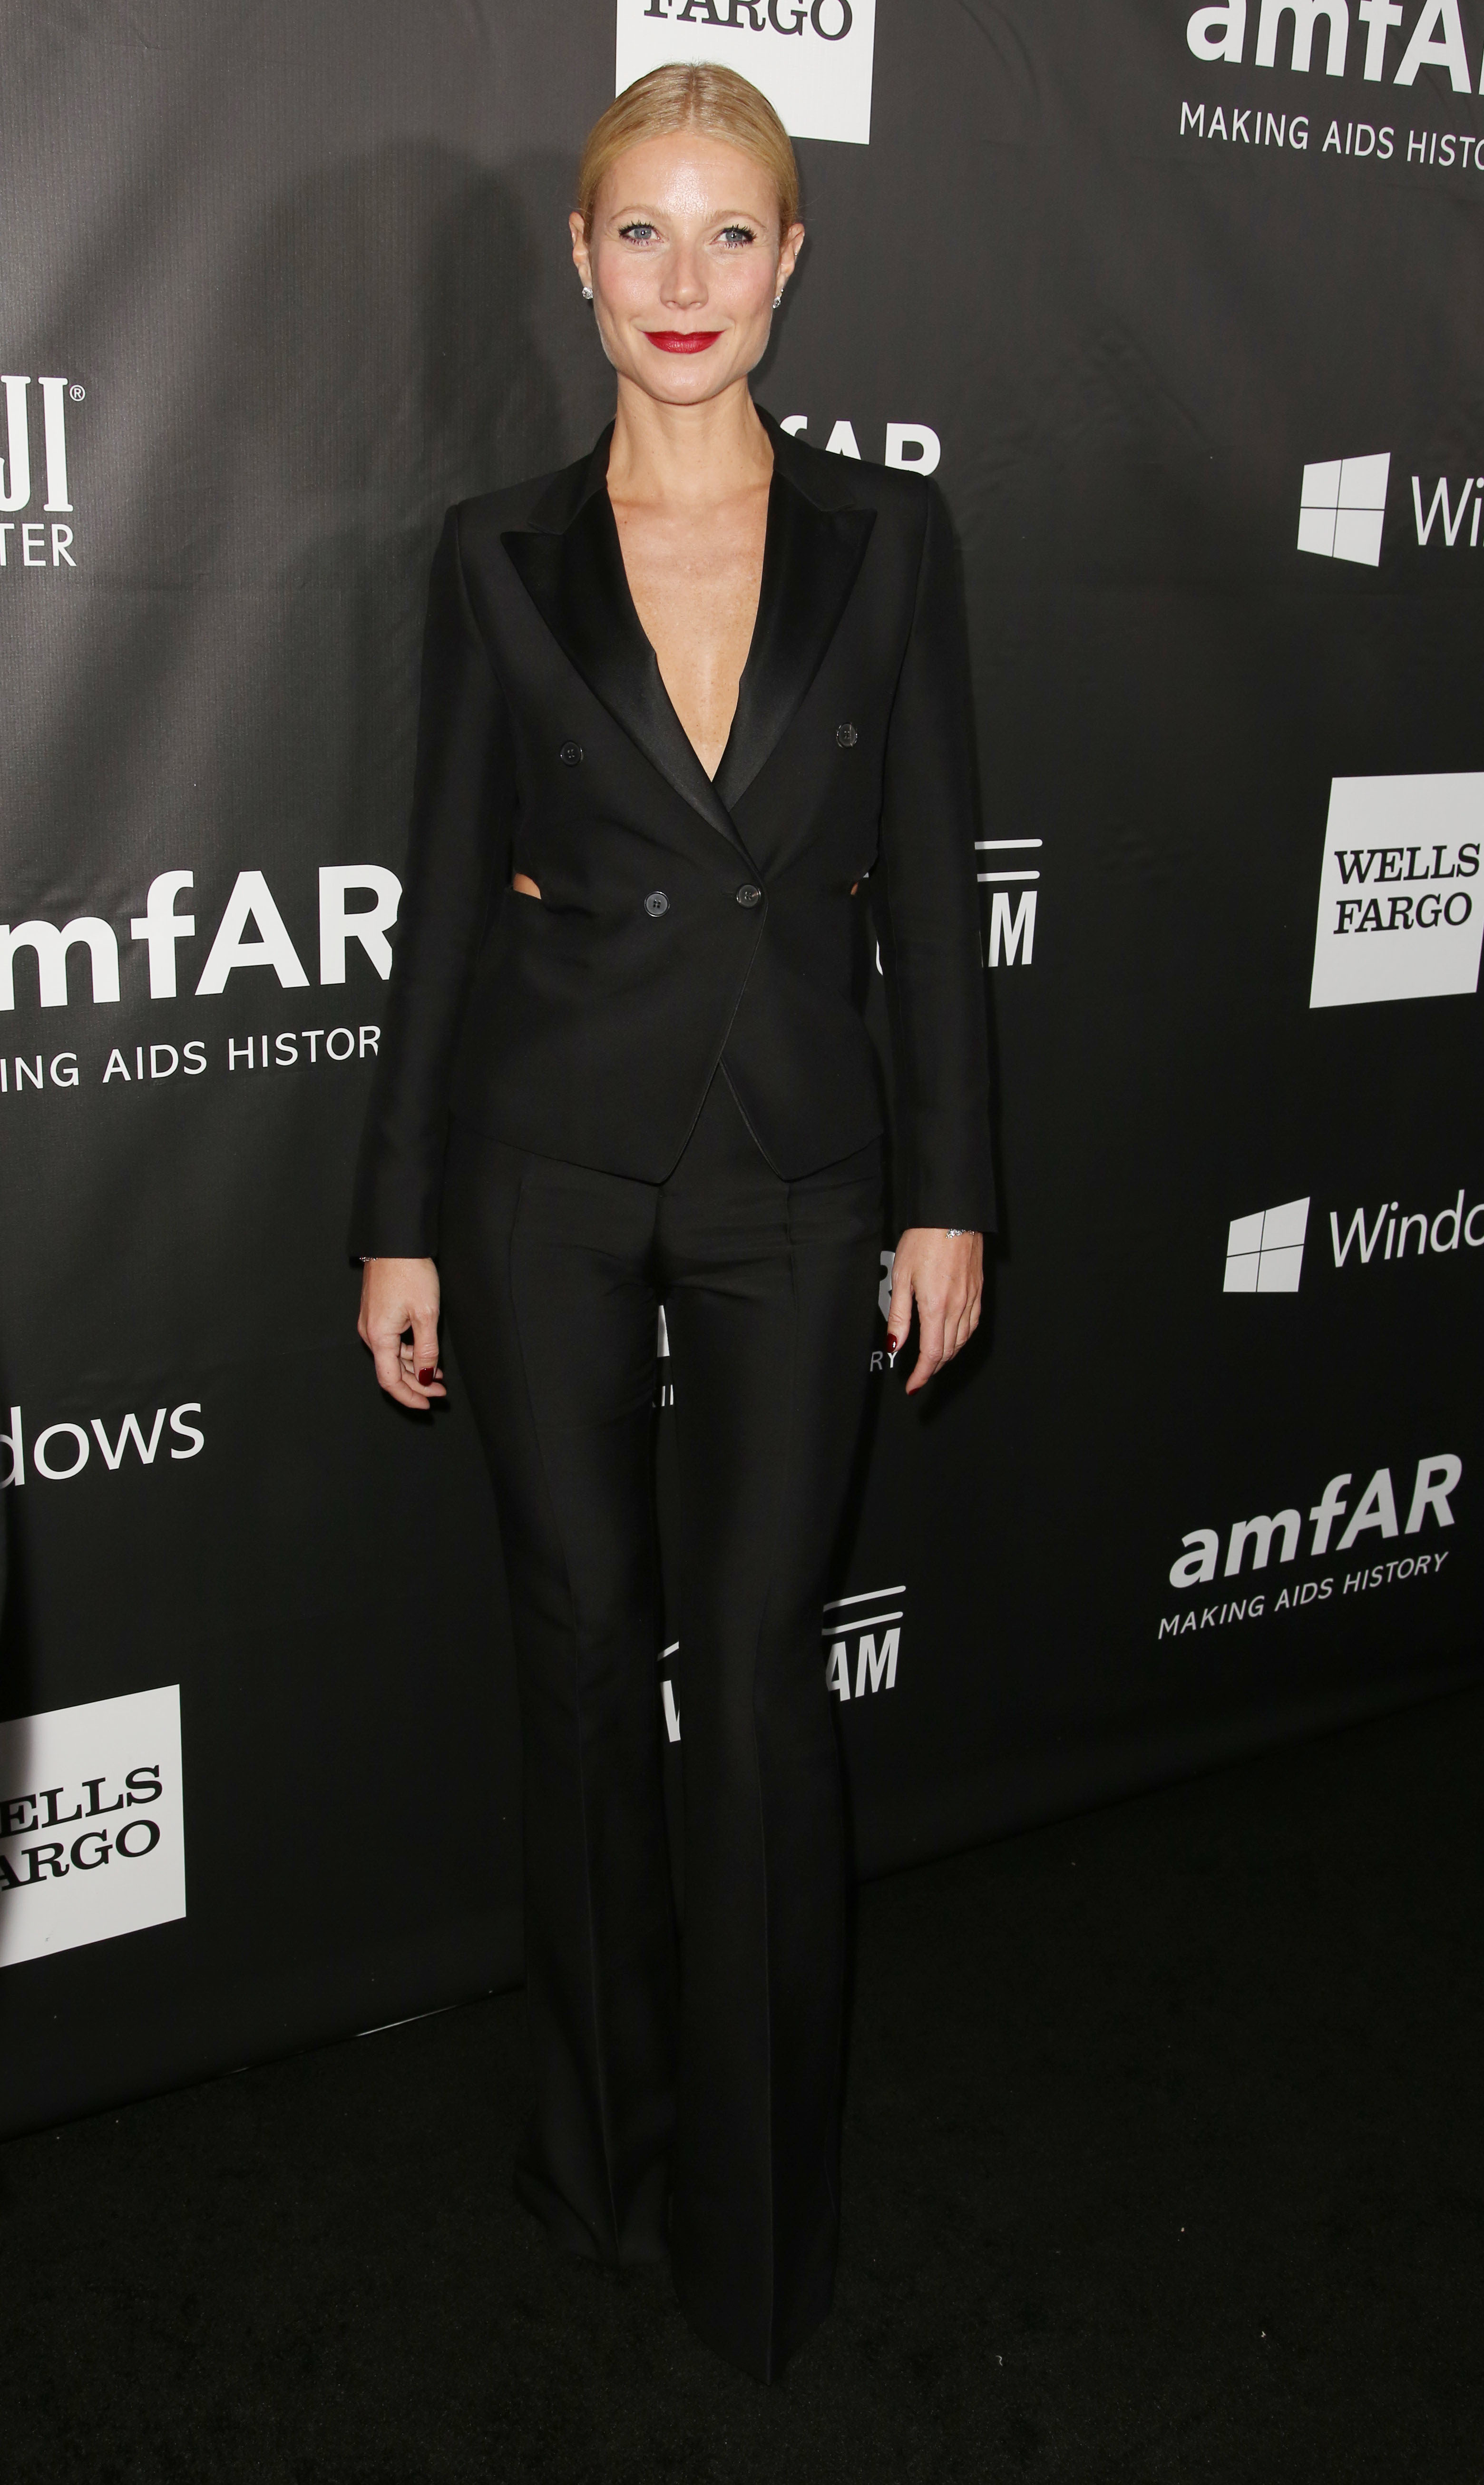 Gwyneth Paltrow hailed as 'a role model for celebrities'